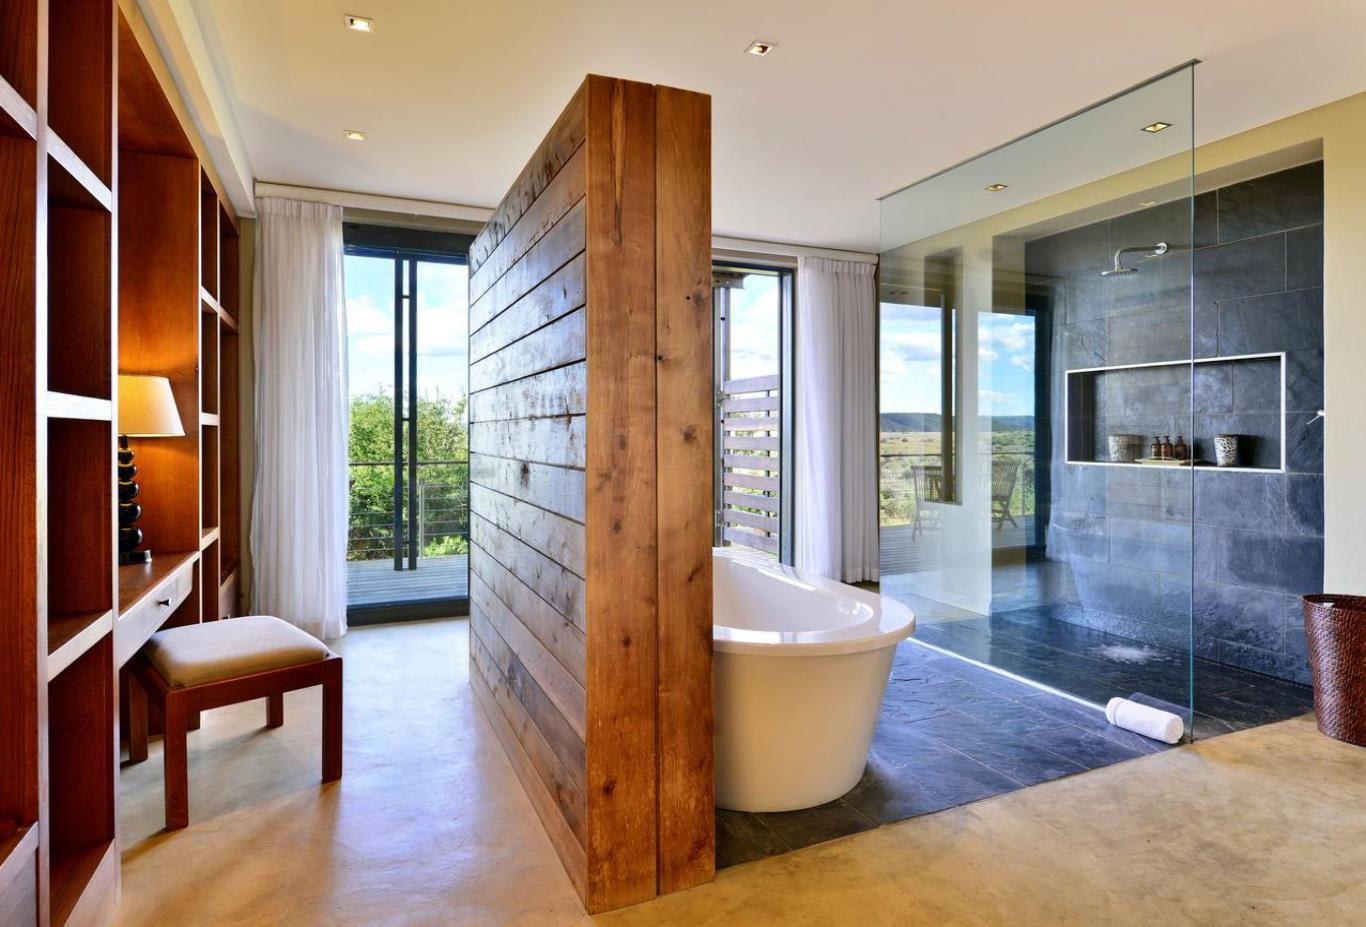 Sarili Luxury River View Bathroom